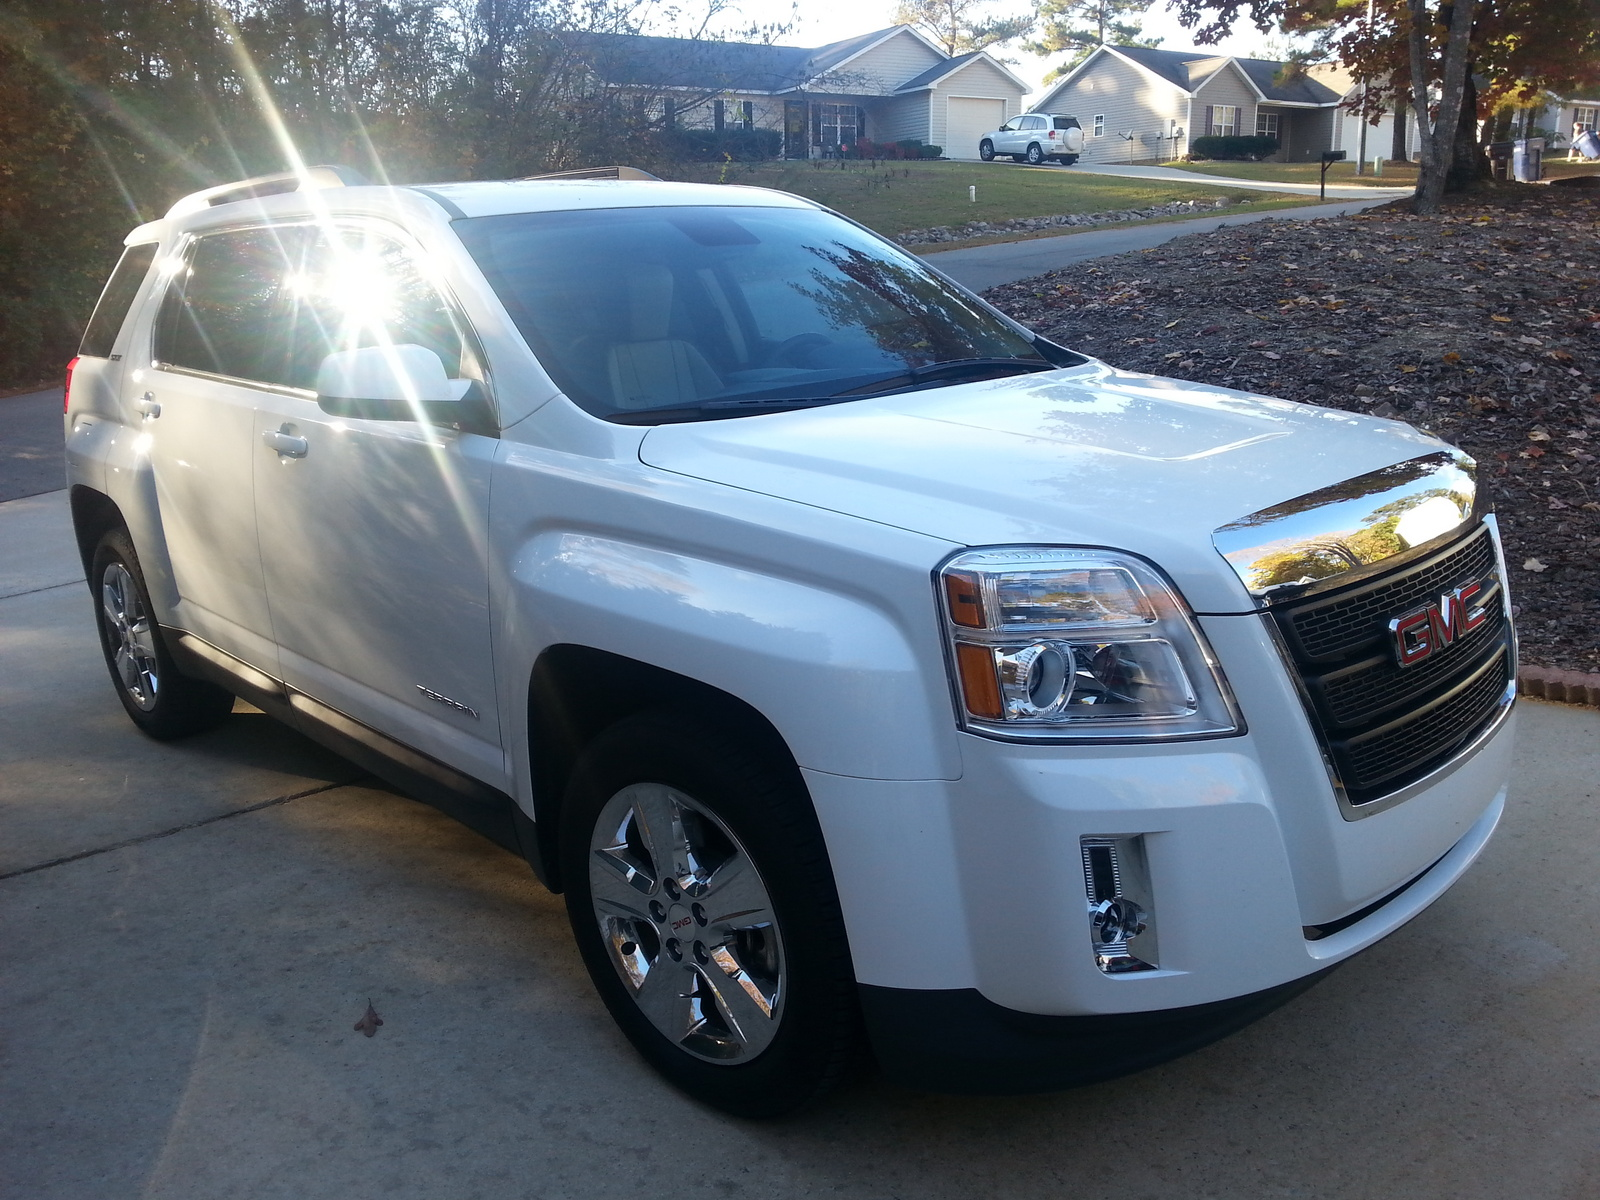 New 2014 2015 Gmc Terrain For Sale Cargurus Canada